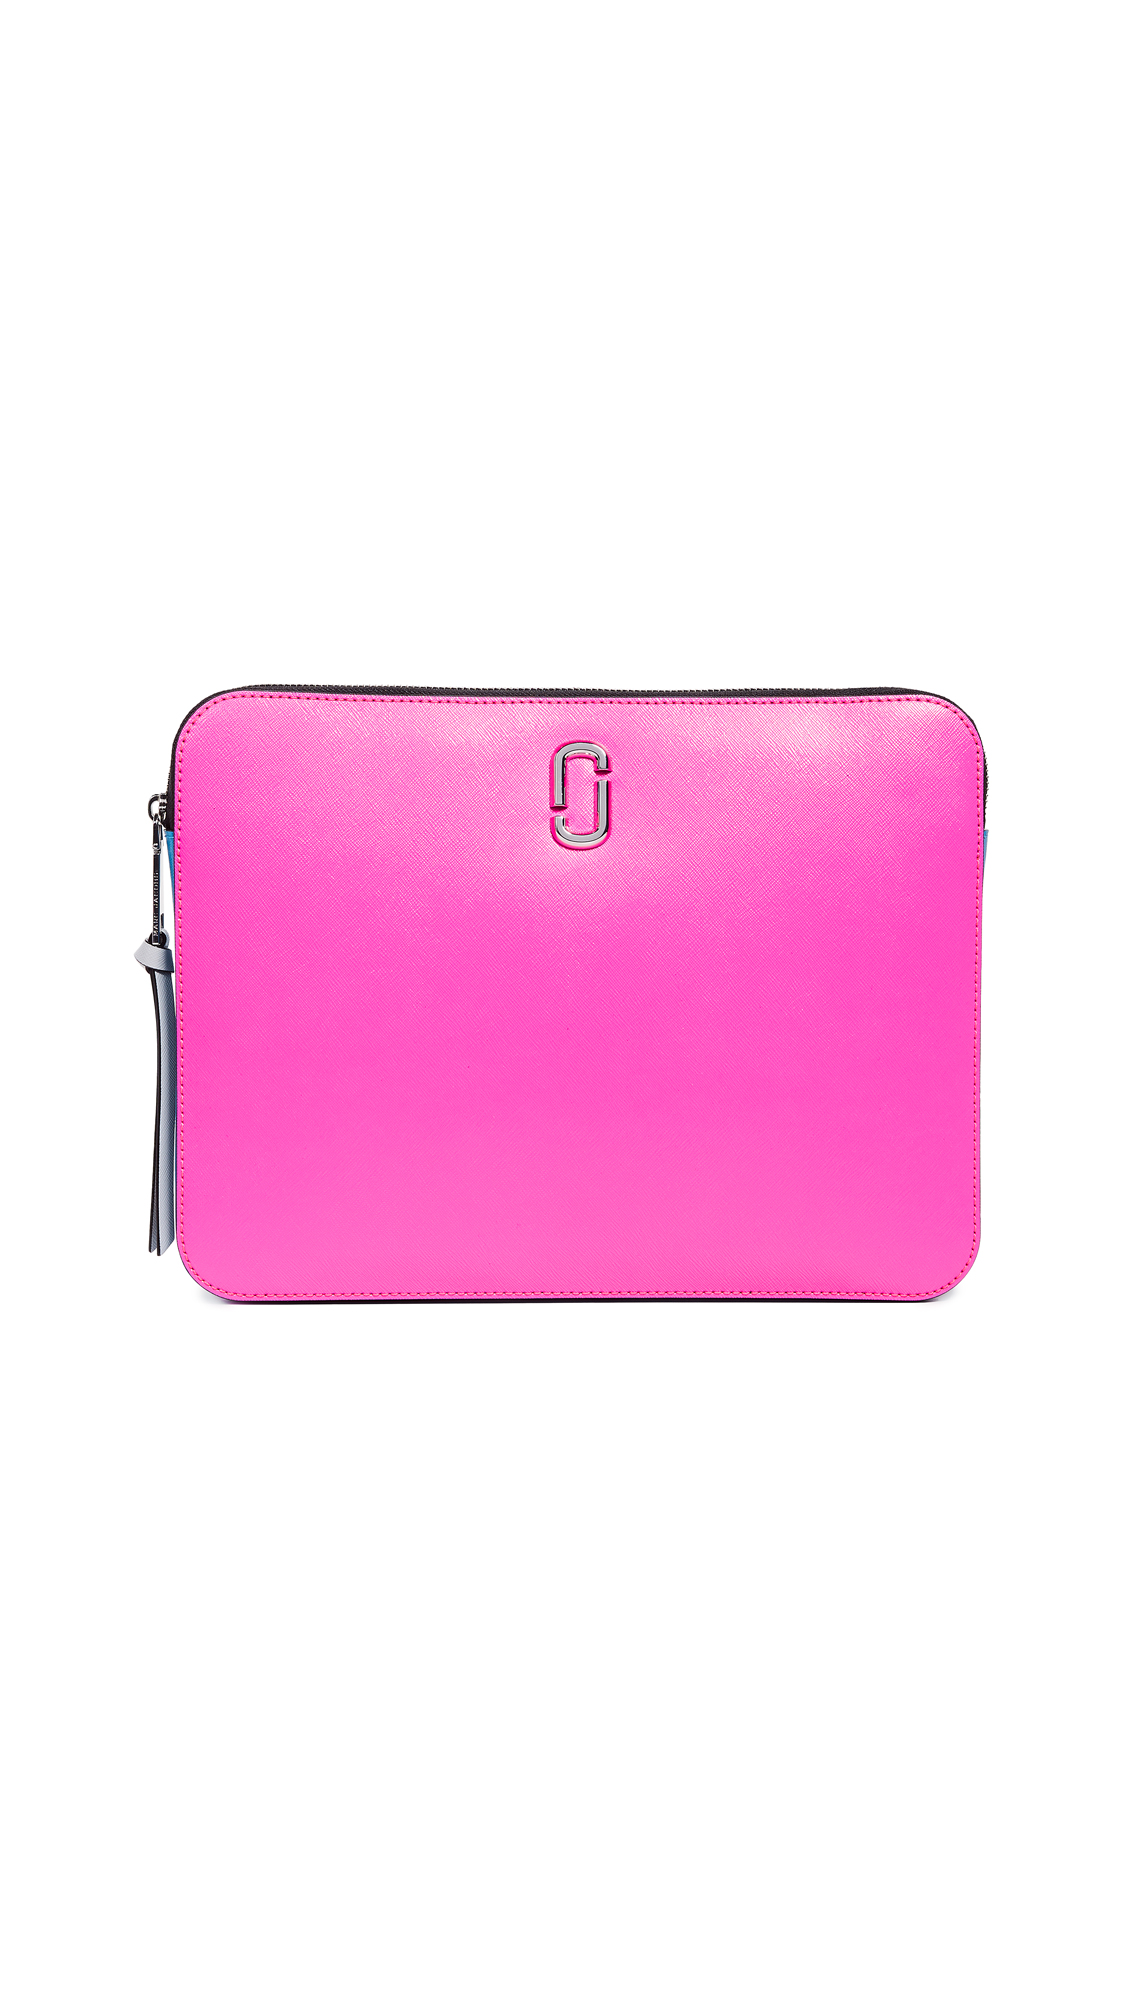 """13 Computer Case"""" in Pink Multi"""